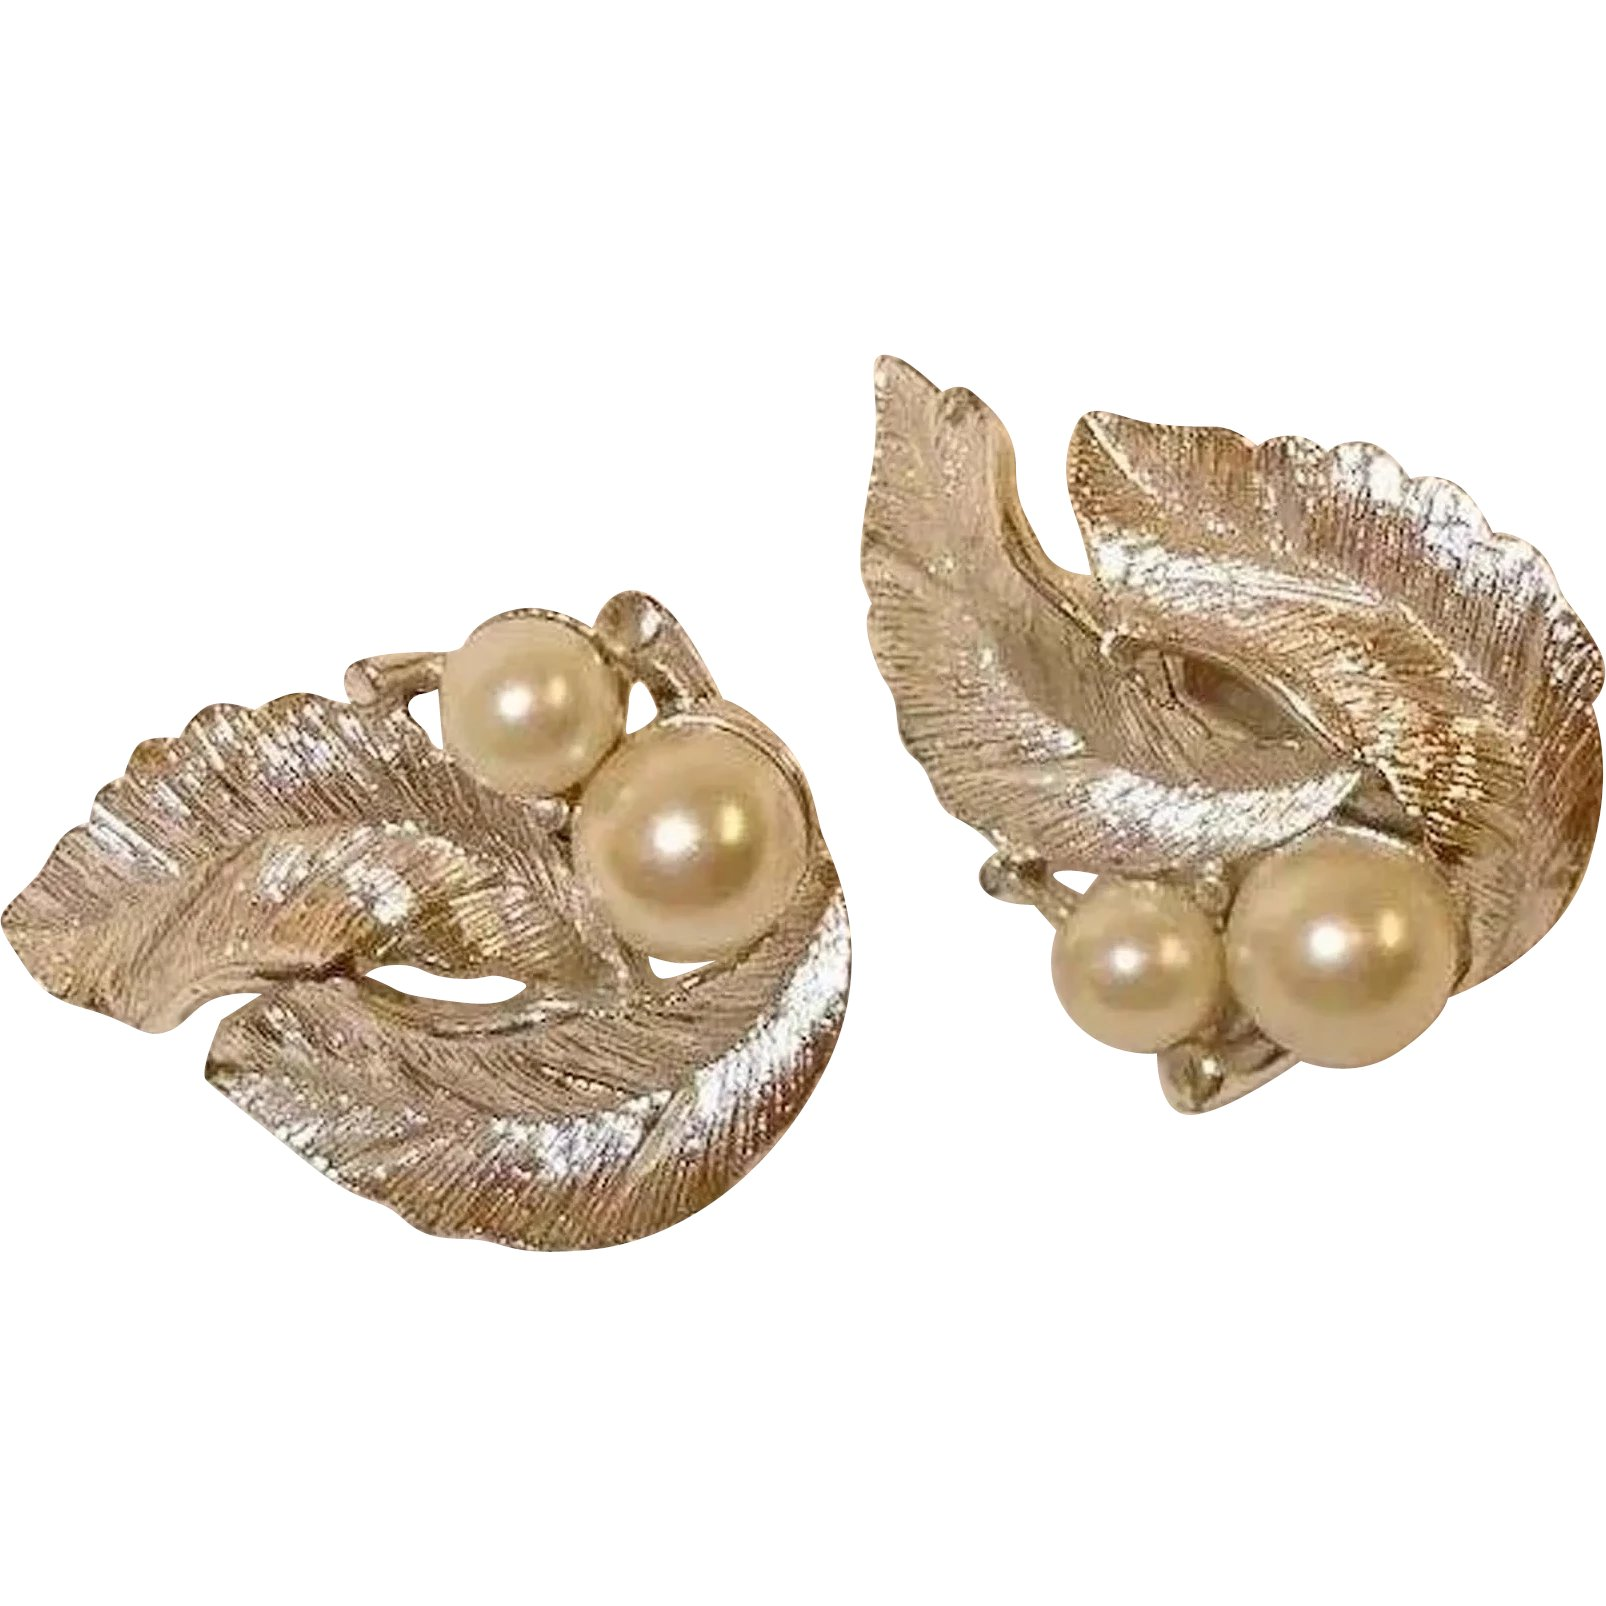 Vintage Retro Gold Tone Sarah Conentry Clip On Earrings Free Shipping Leaf Faux Pearl